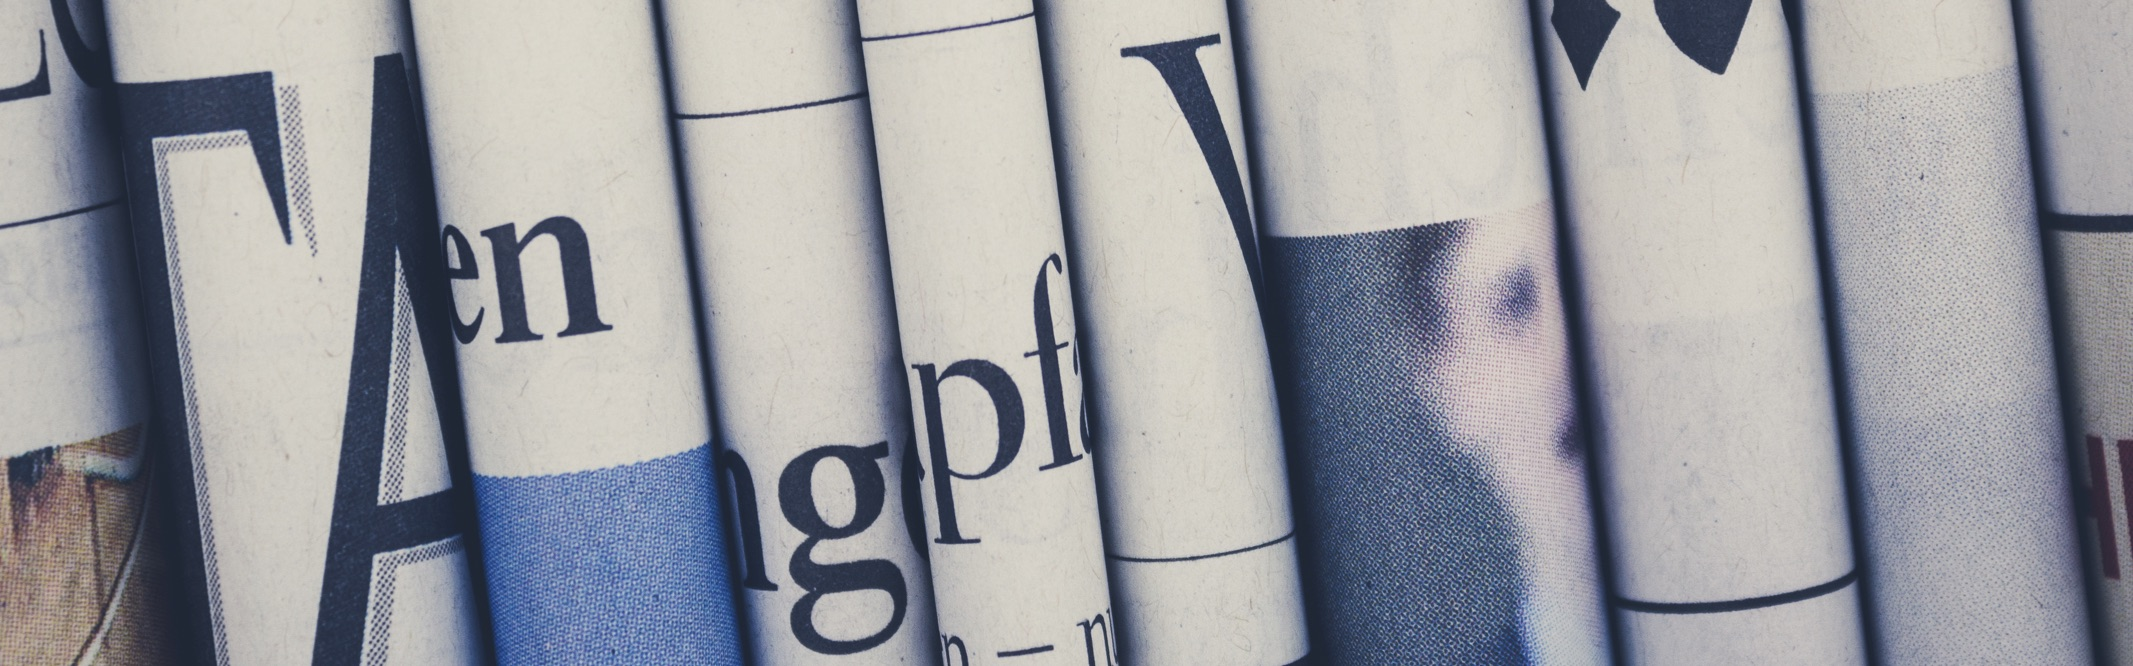 Close up view of vertically stacked newspapers